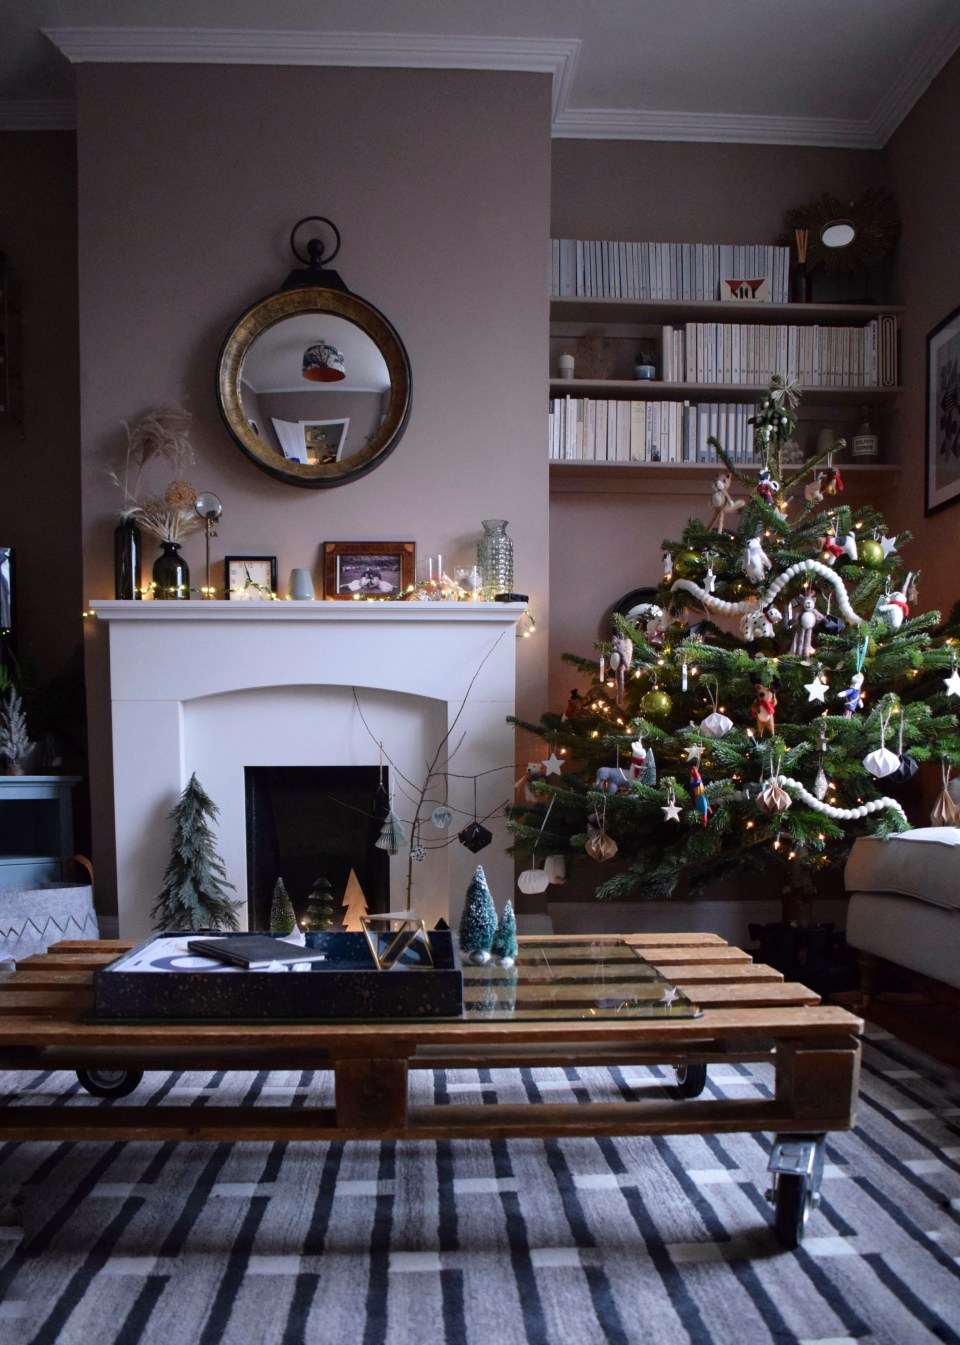 Farrow-Ball-Dead-Salmon-Living-Room-Christmas-Tree-with-colourful-felt-animals-vintage-christmas-look-scandinavian-design (1)